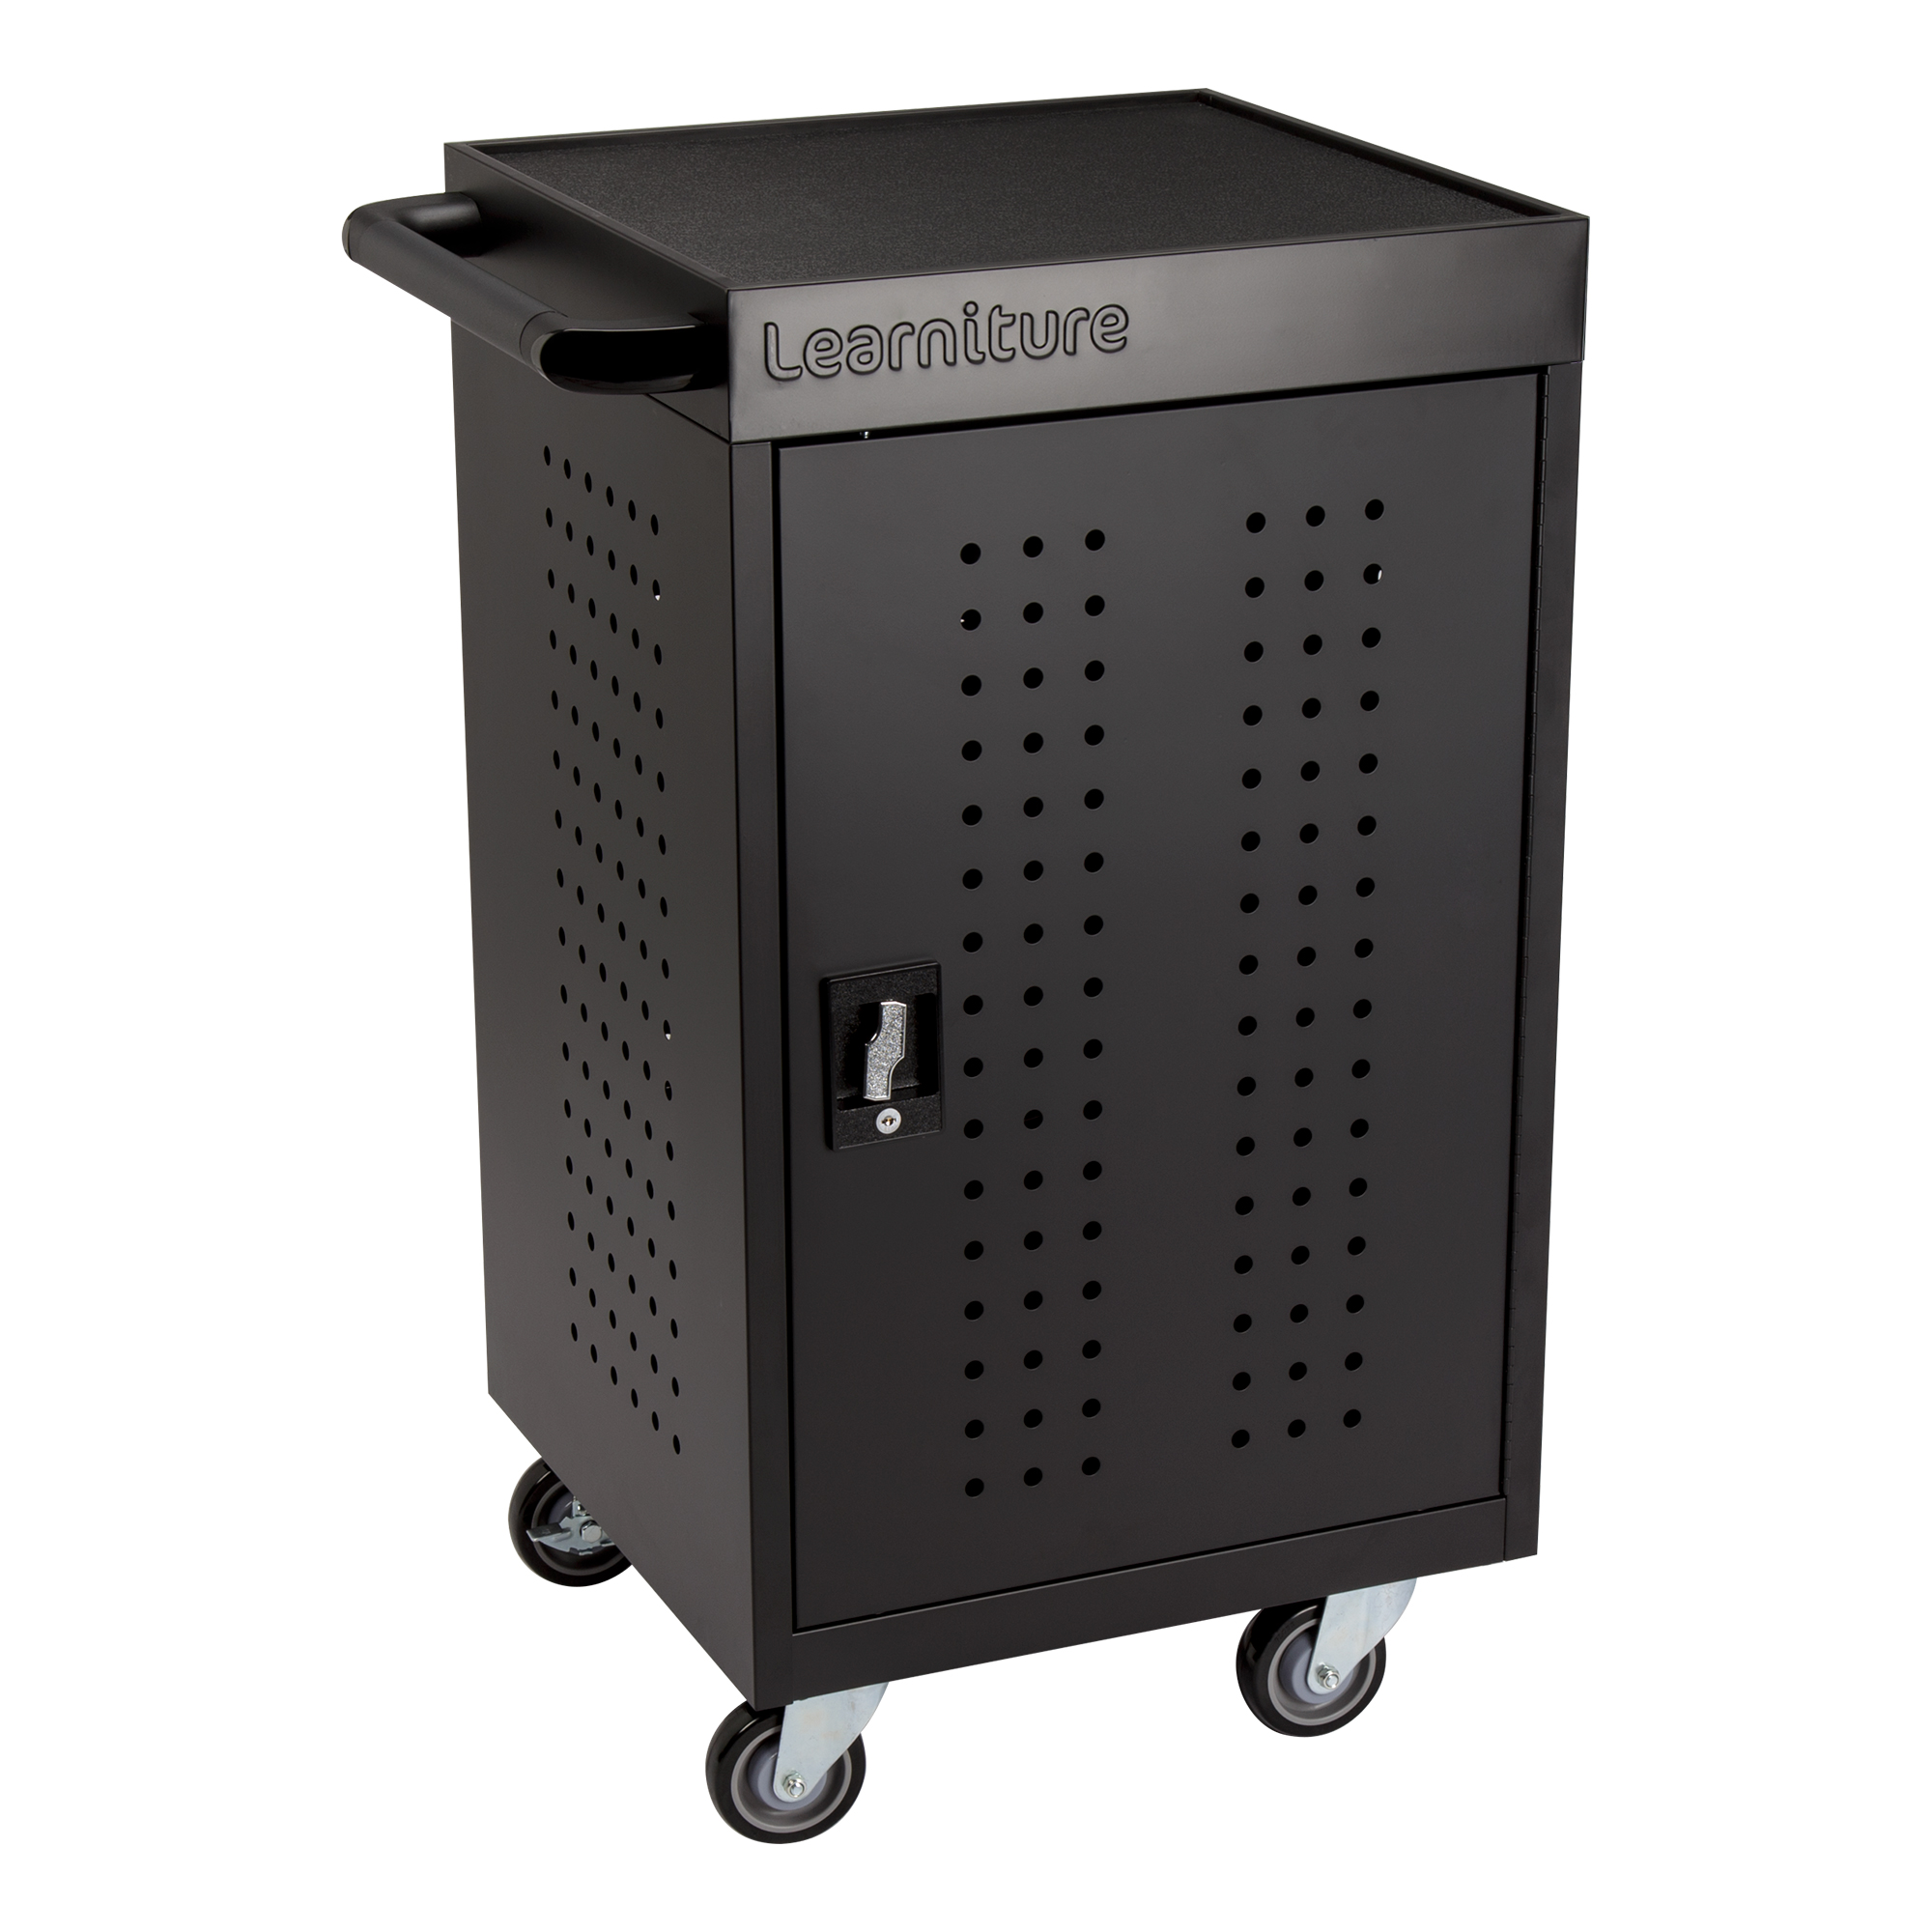 LNT GNO3008 SO?width=250&height=250&version=v20171115 learniture structure series 30 bay tablet charging cart w  at reclaimingppi.co